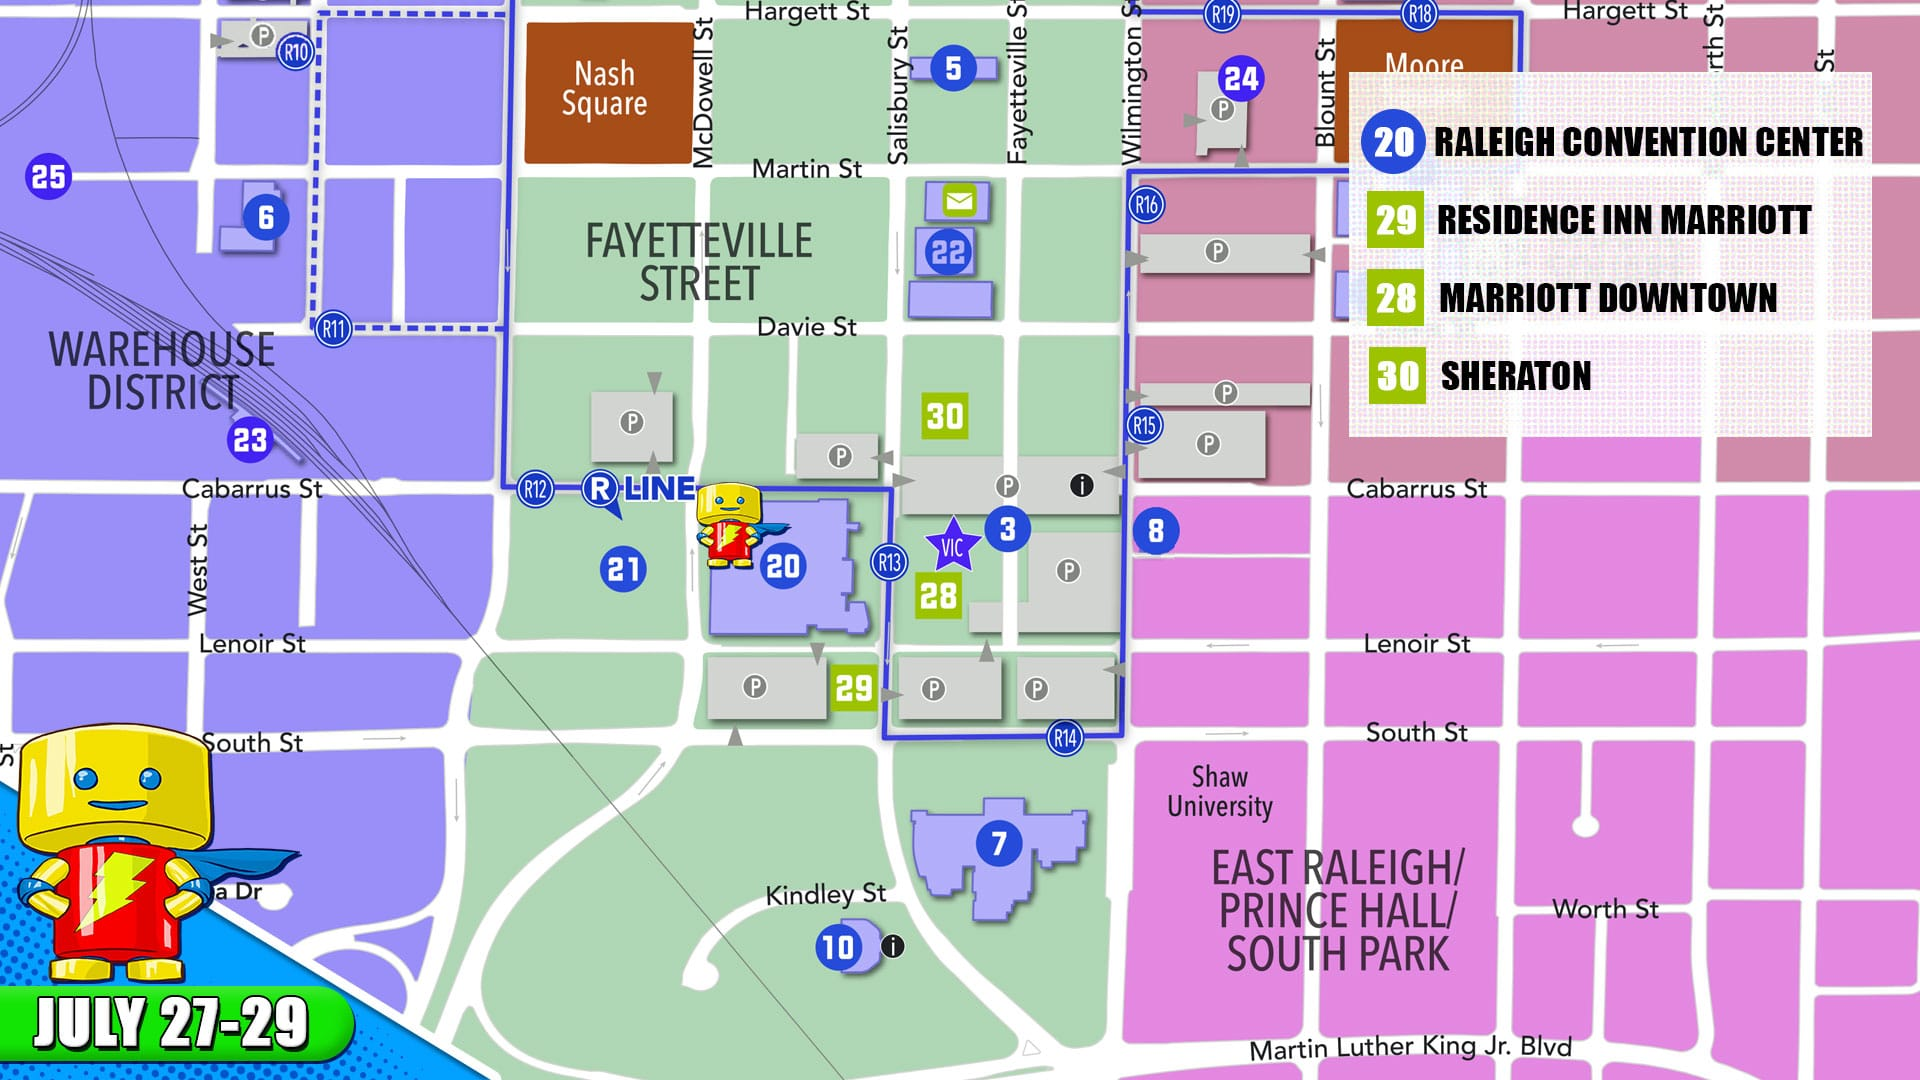 Parking and Directions - RALEIGH SUPERCON